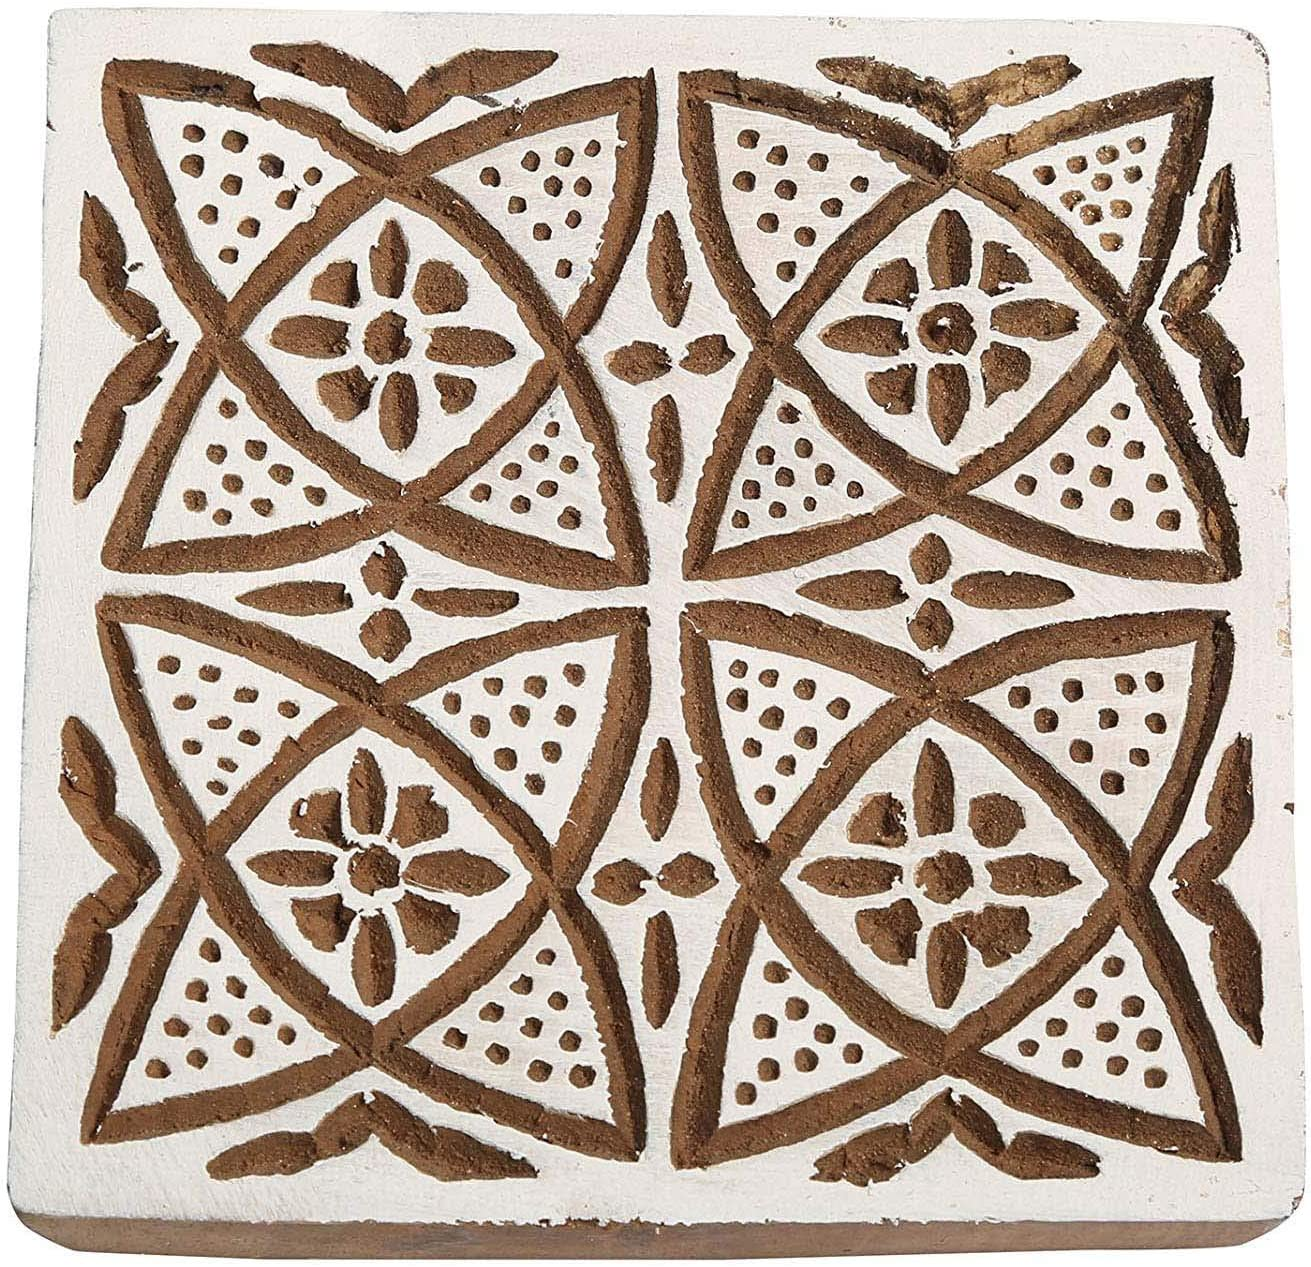 All items free shipping Sharvgun Decorative Wooden Printing Block Brown Indian Woode Max 79% OFF New